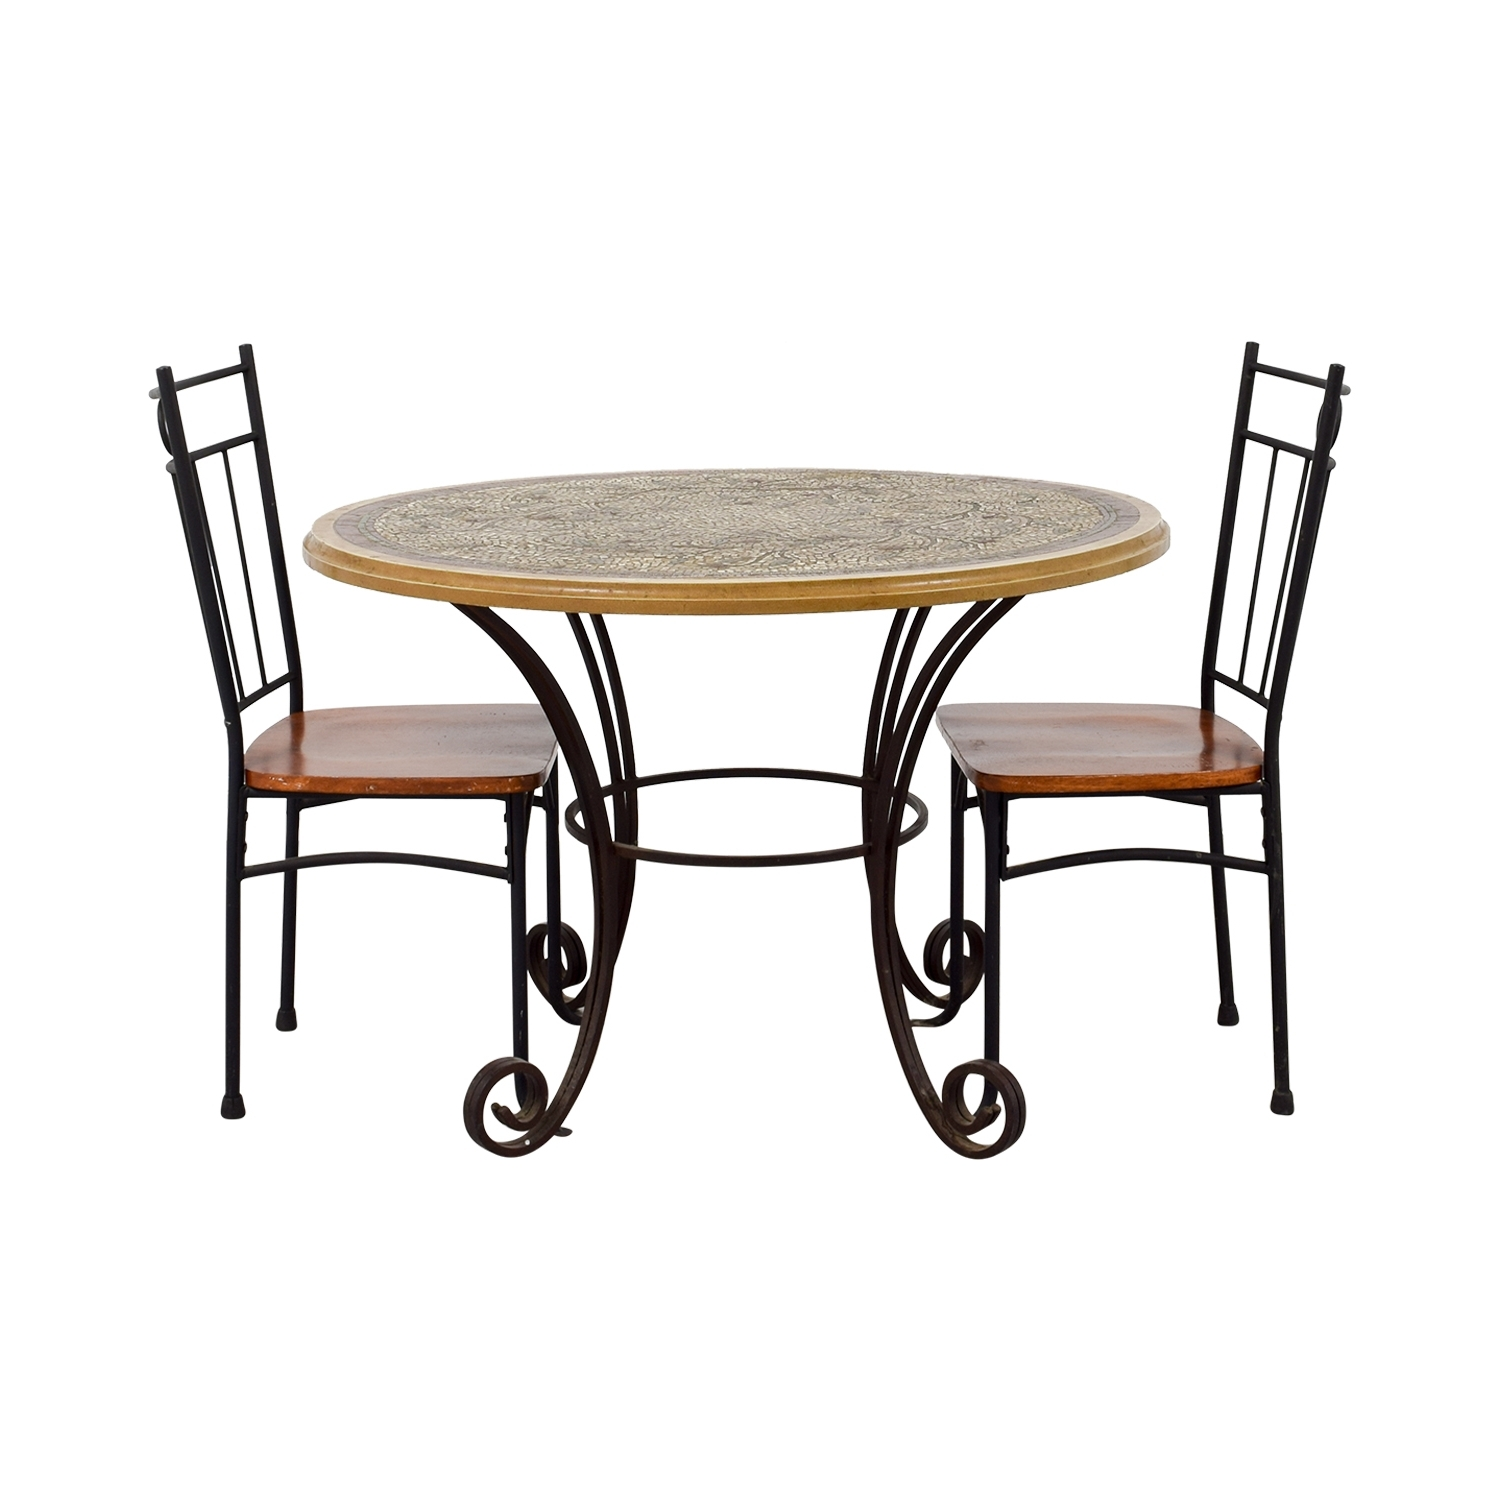 [%81% Off – Mosaic Dining Set / Tables For Newest Mosaic Dining Tables For Sale|Mosaic Dining Tables For Sale With Regard To Most Recent 81% Off – Mosaic Dining Set / Tables|Well Known Mosaic Dining Tables For Sale Within 81% Off – Mosaic Dining Set / Tables|Most Up To Date 81% Off – Mosaic Dining Set / Tables Inside Mosaic Dining Tables For Sale%] (View 1 of 25)